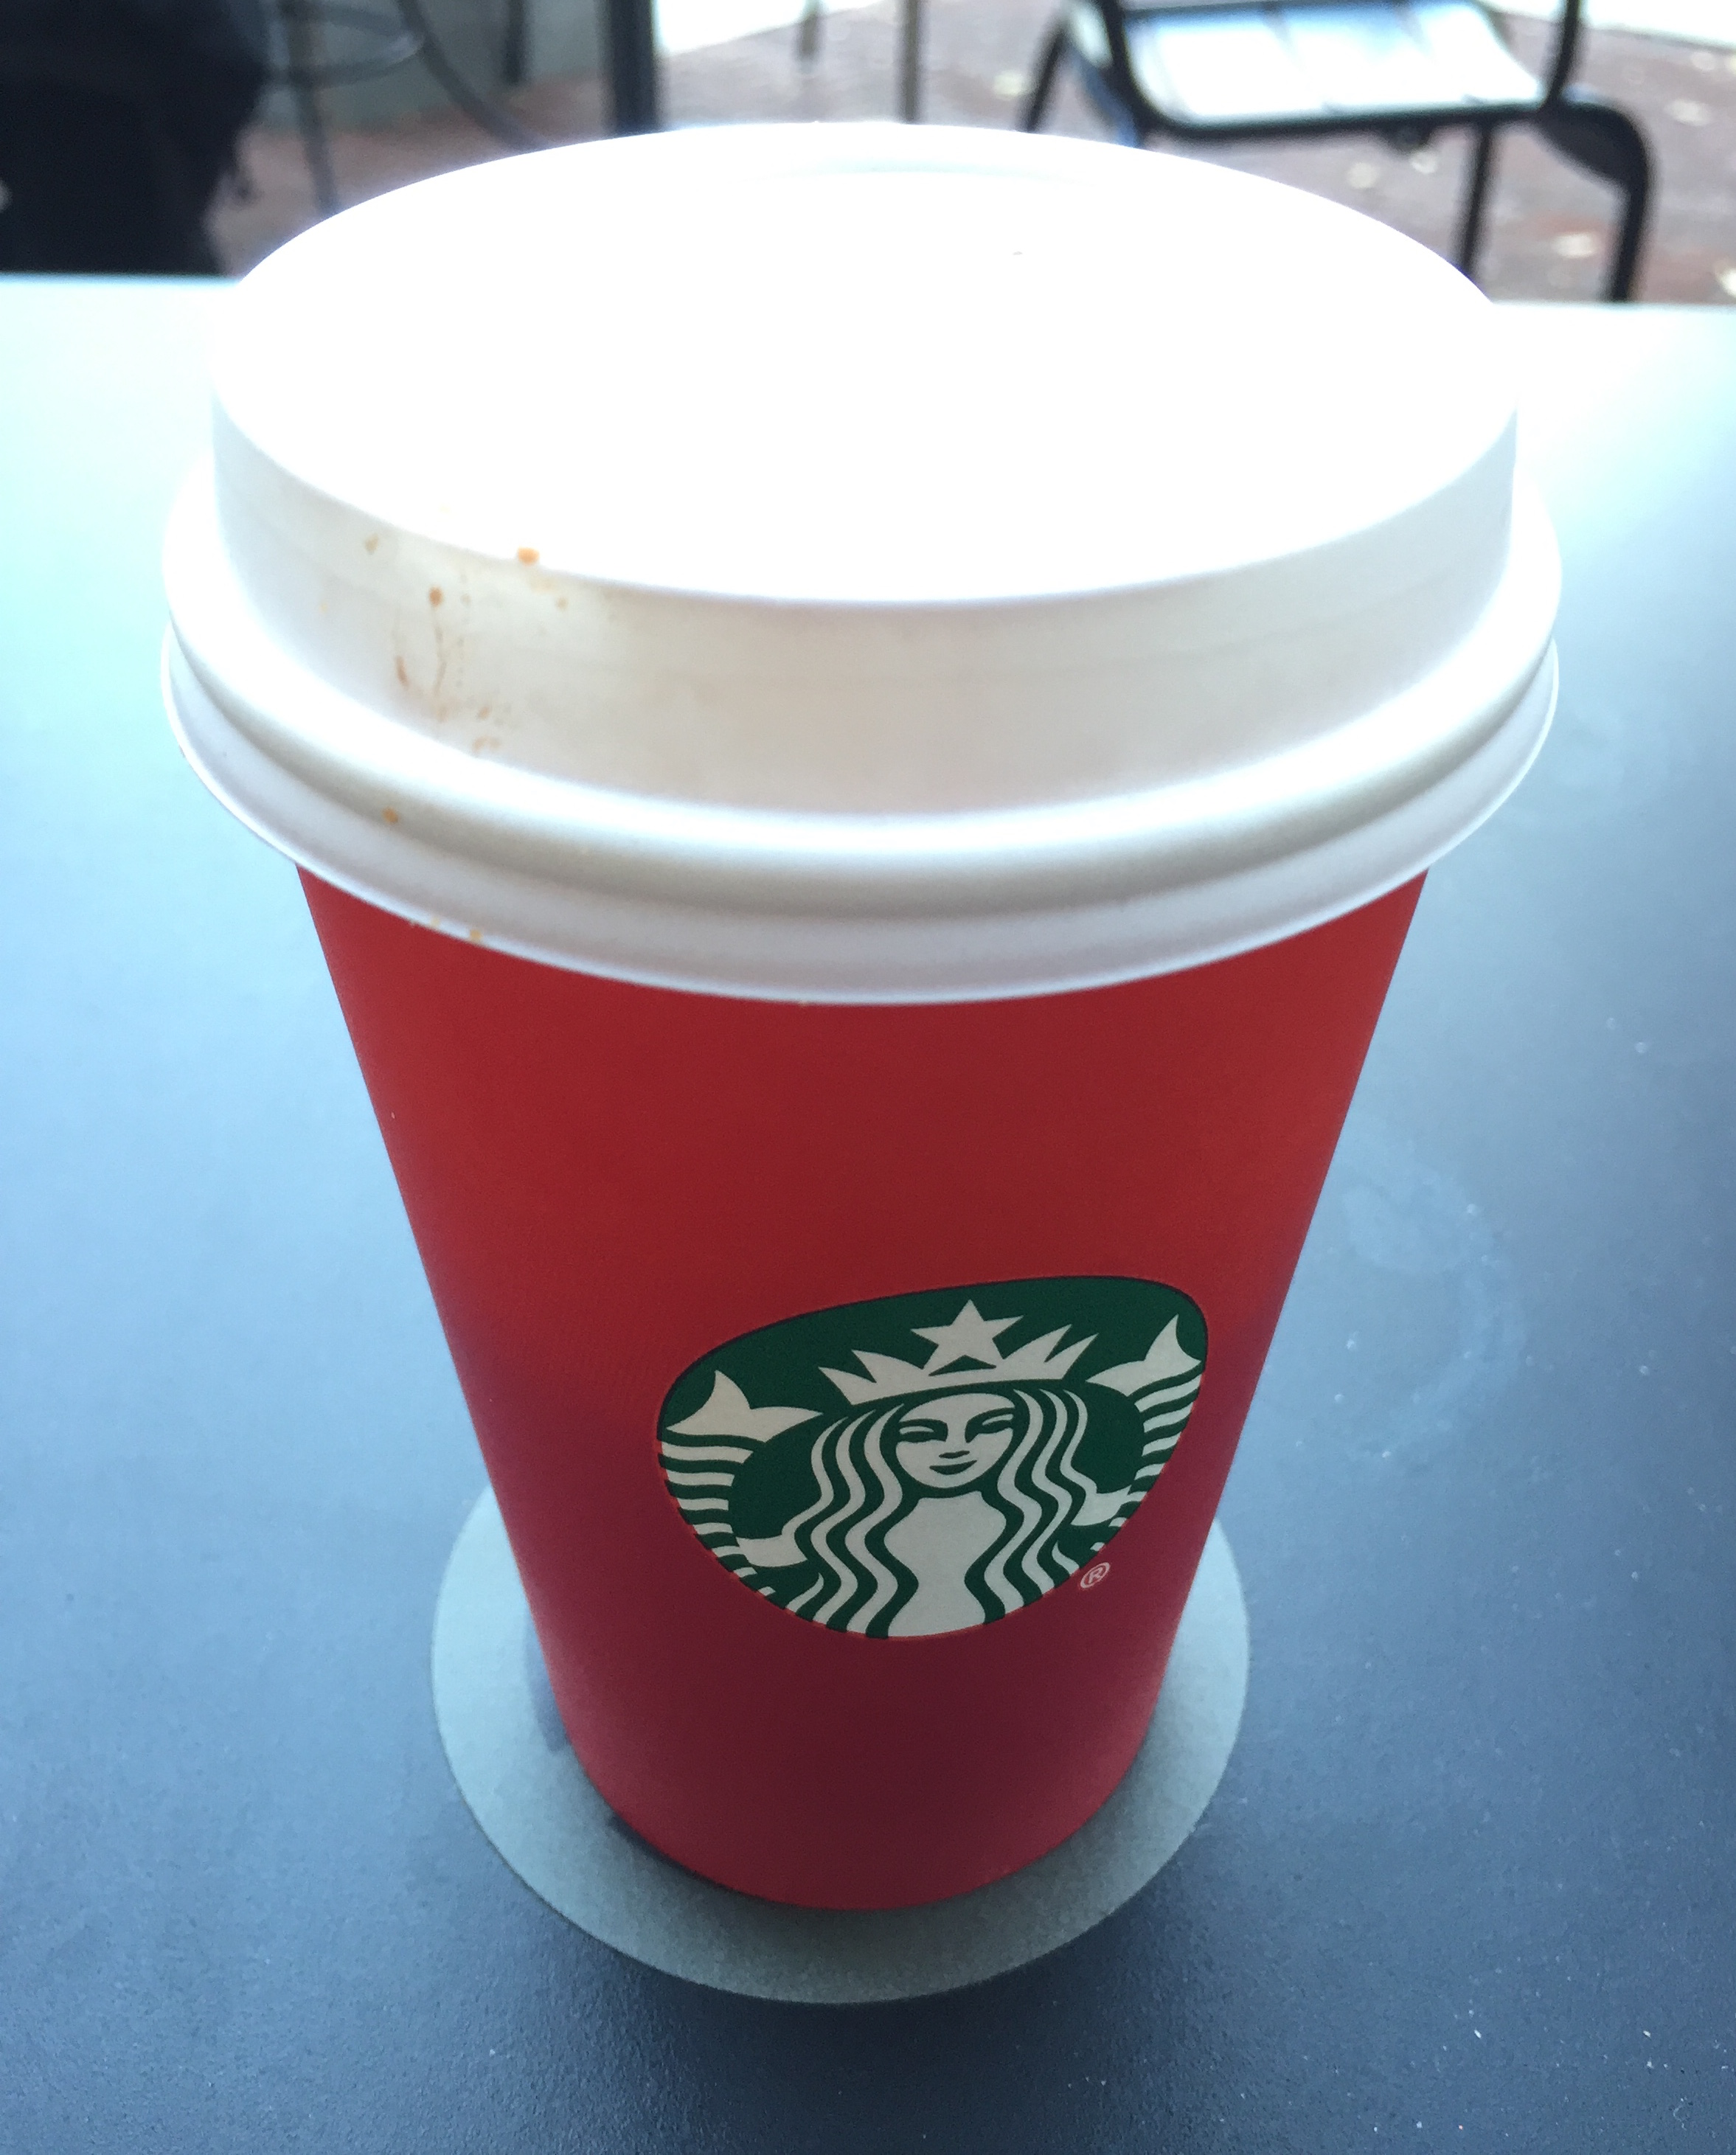 The Controversial Red Cup